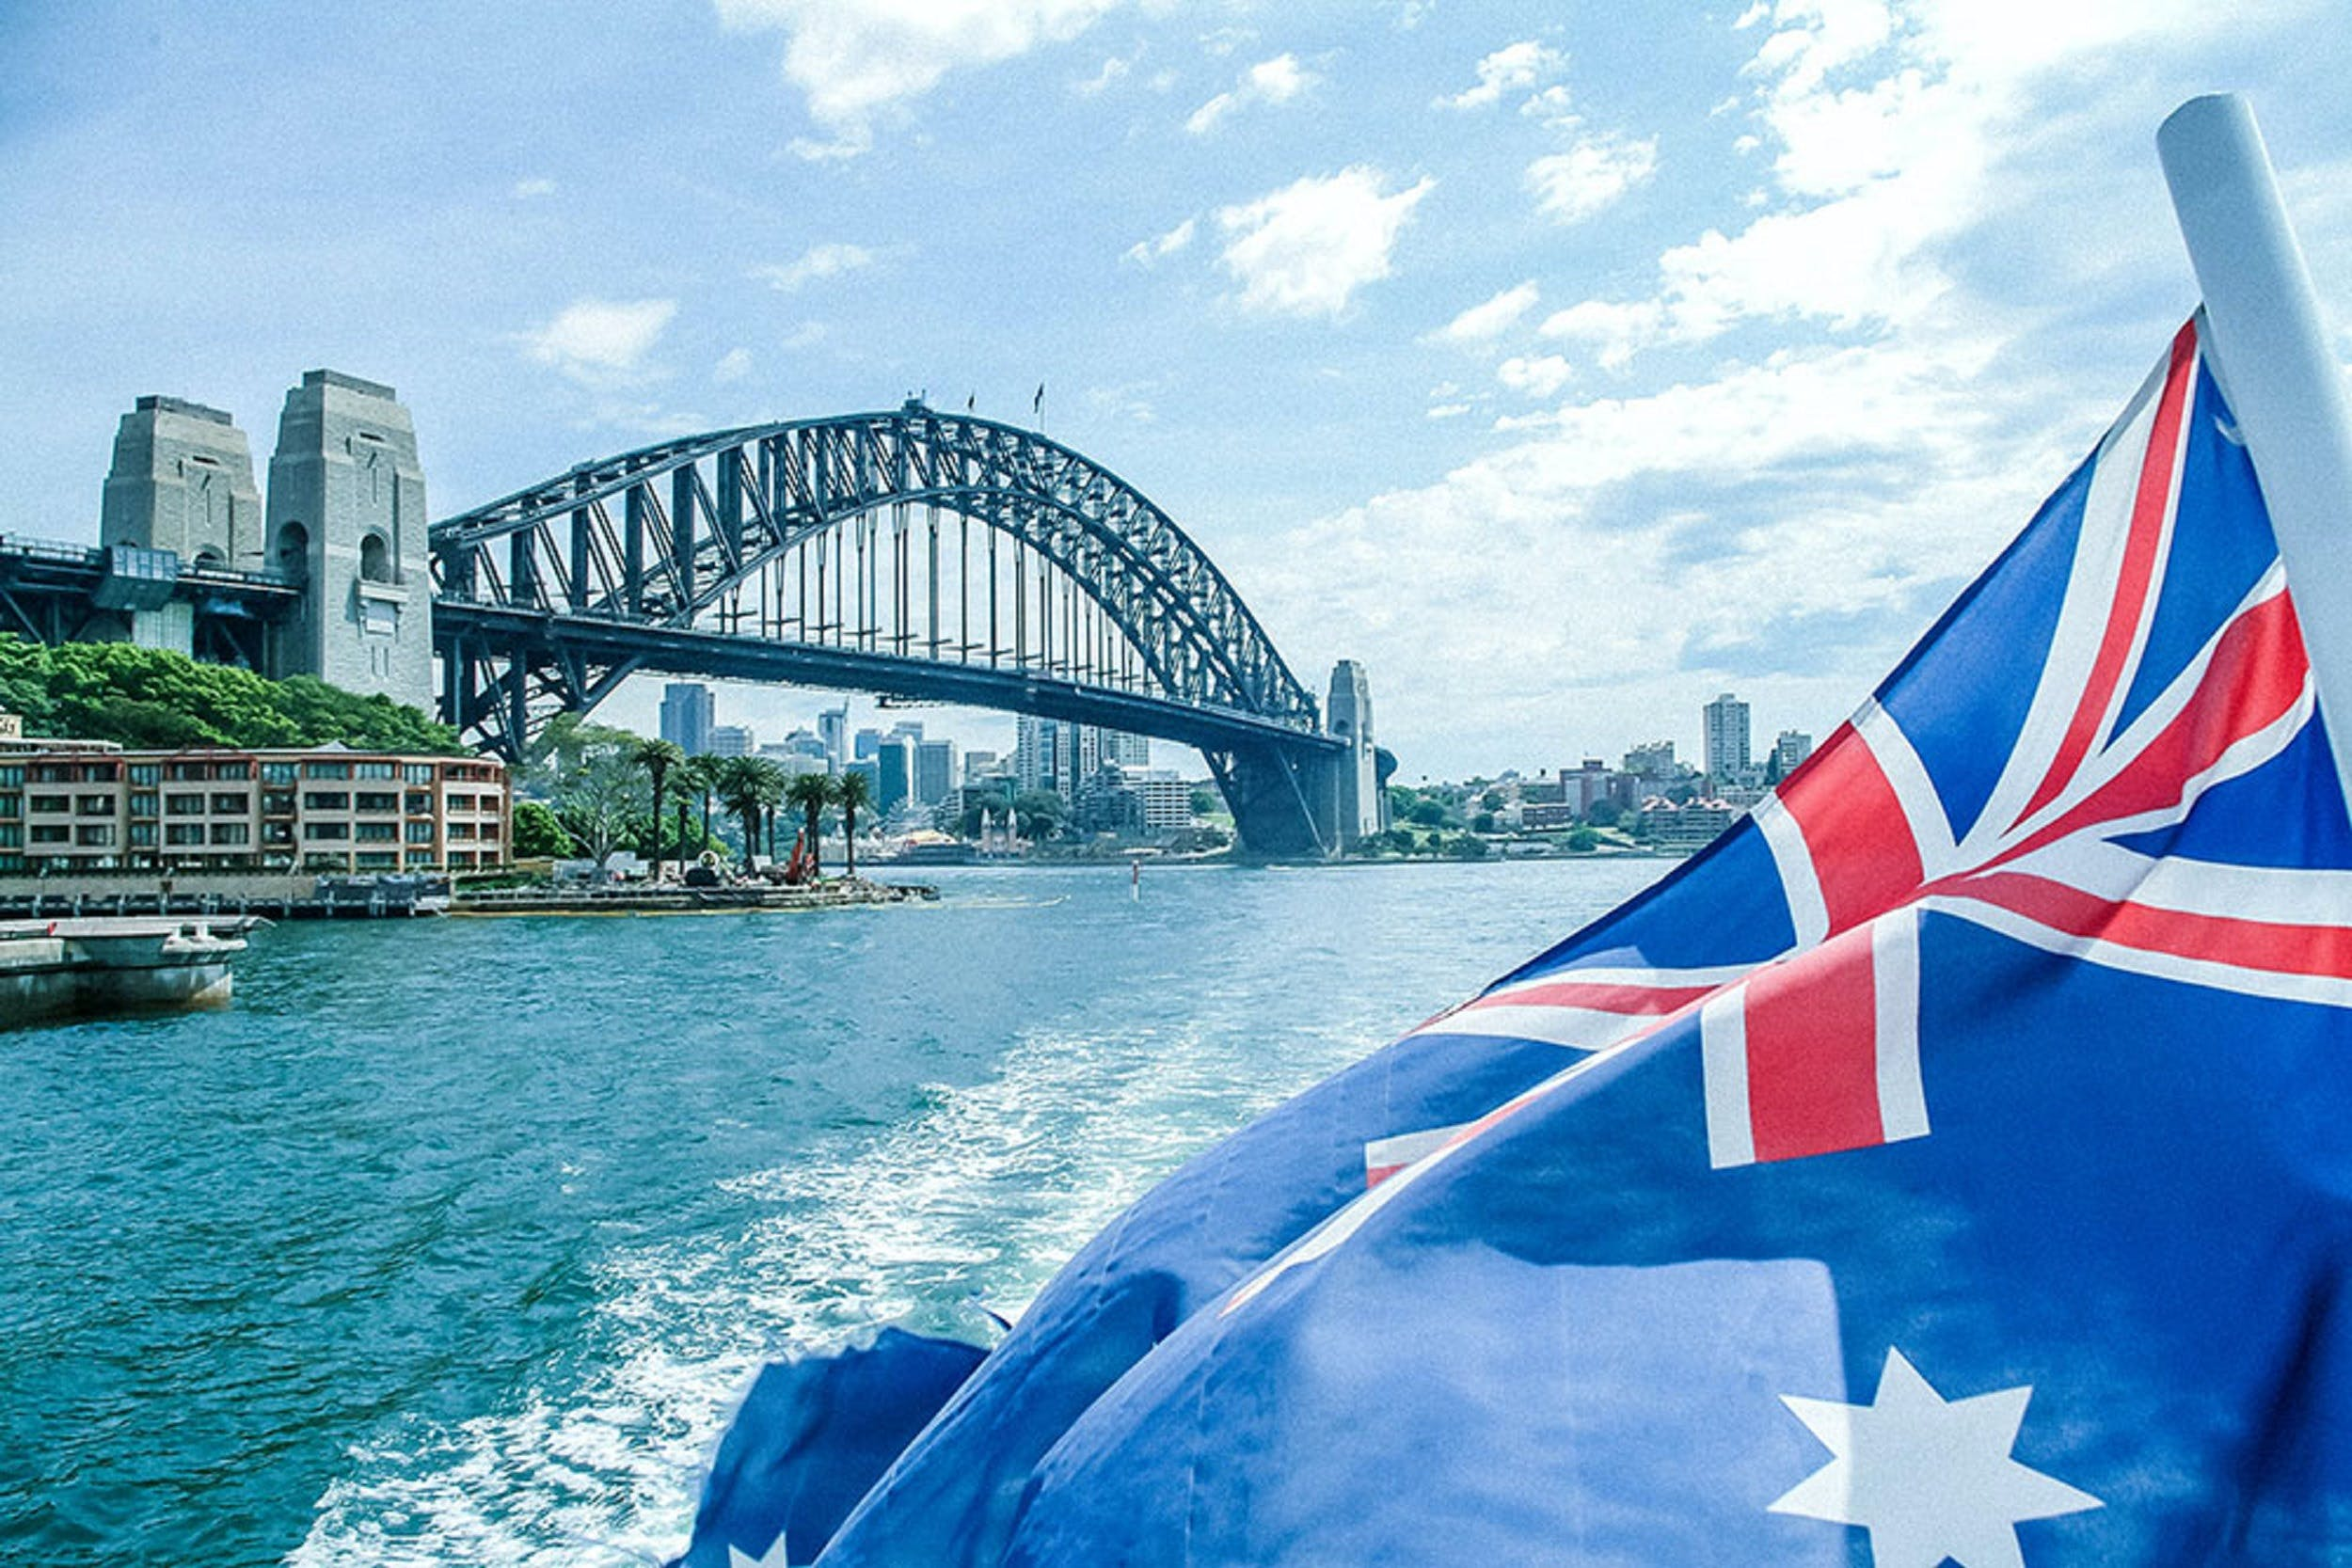 Australia Day Lunch and Dinner Cruises On Sydney Harbour with Sydney Showboats - Accommodation NSW